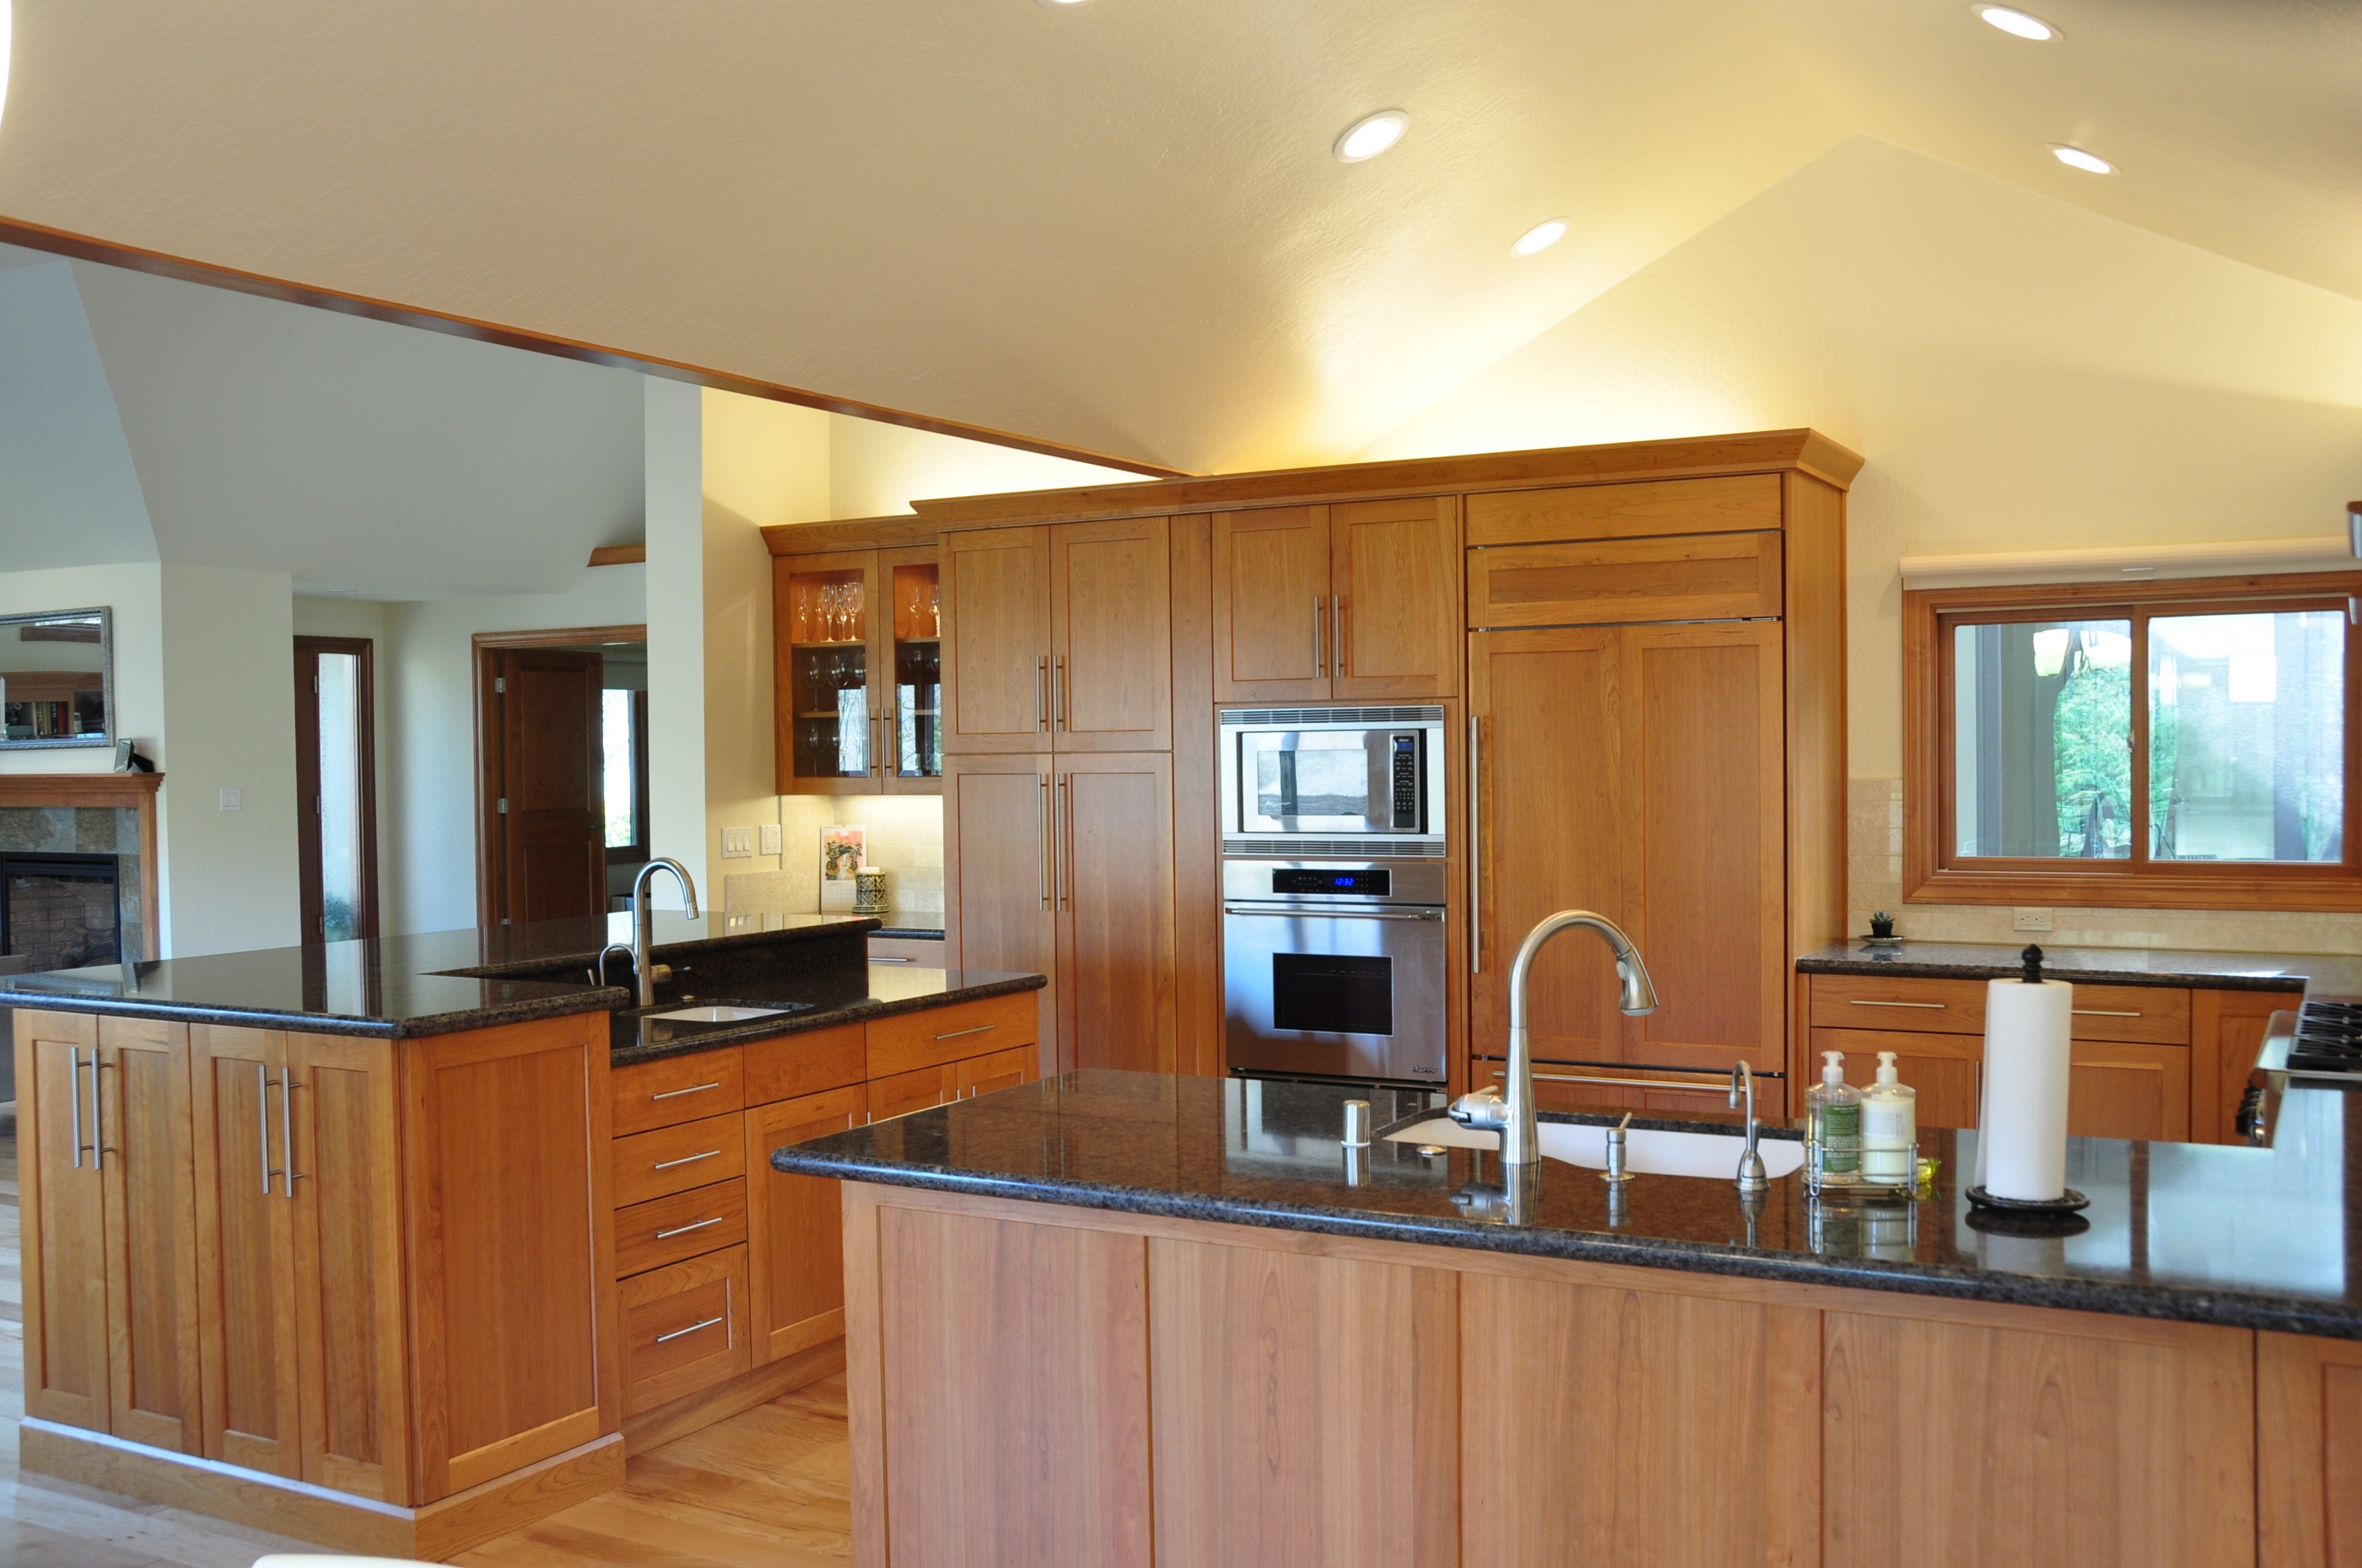 Entertainment Center, Kitchen & Bathroom - Alamo, CA